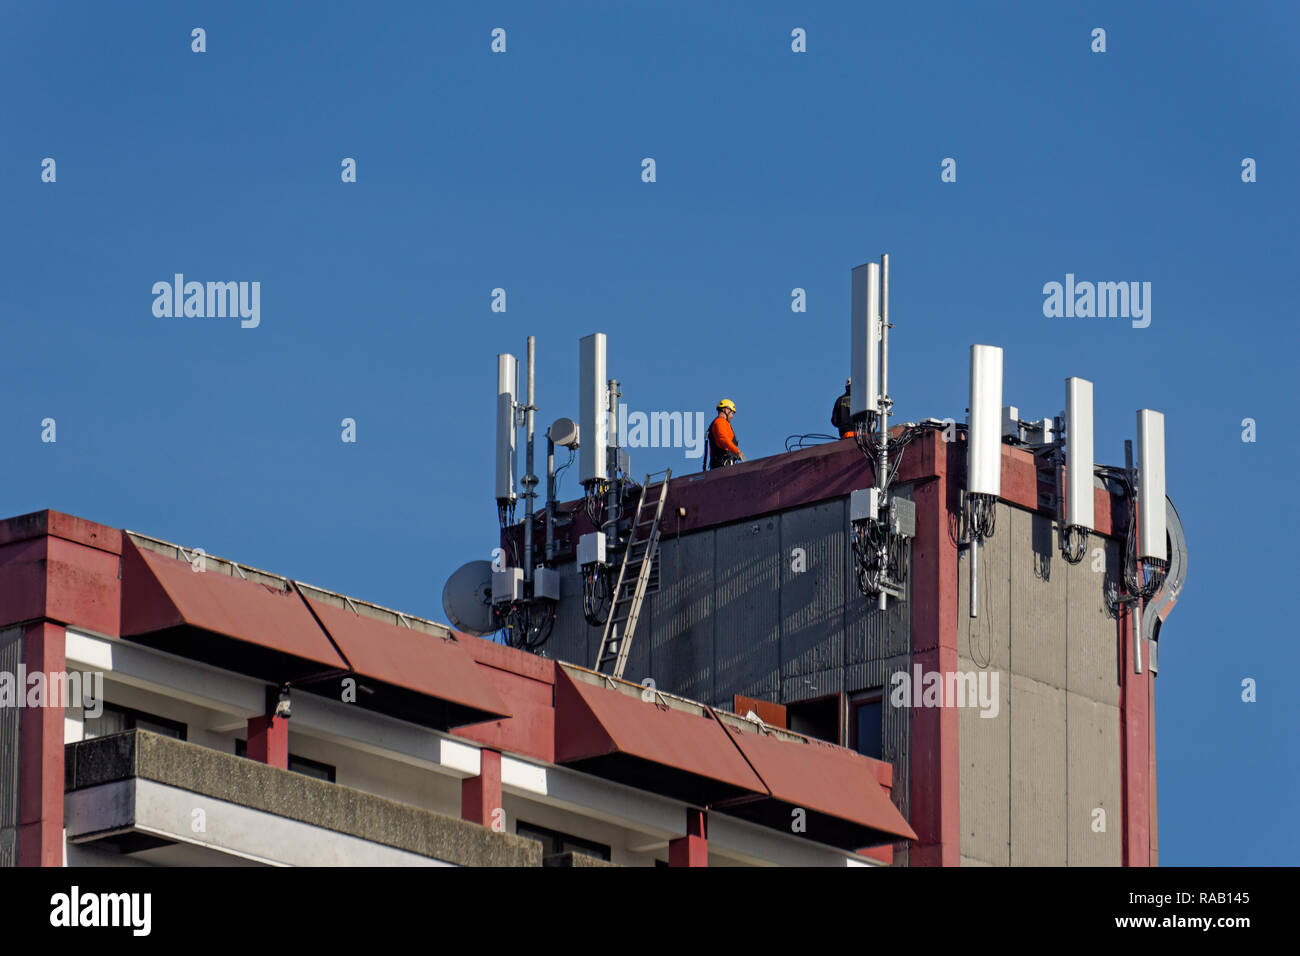 Cellphone antennas and a telecommunications workers on top of an apartment building in Vancouver, BC, Canada Stock Photo